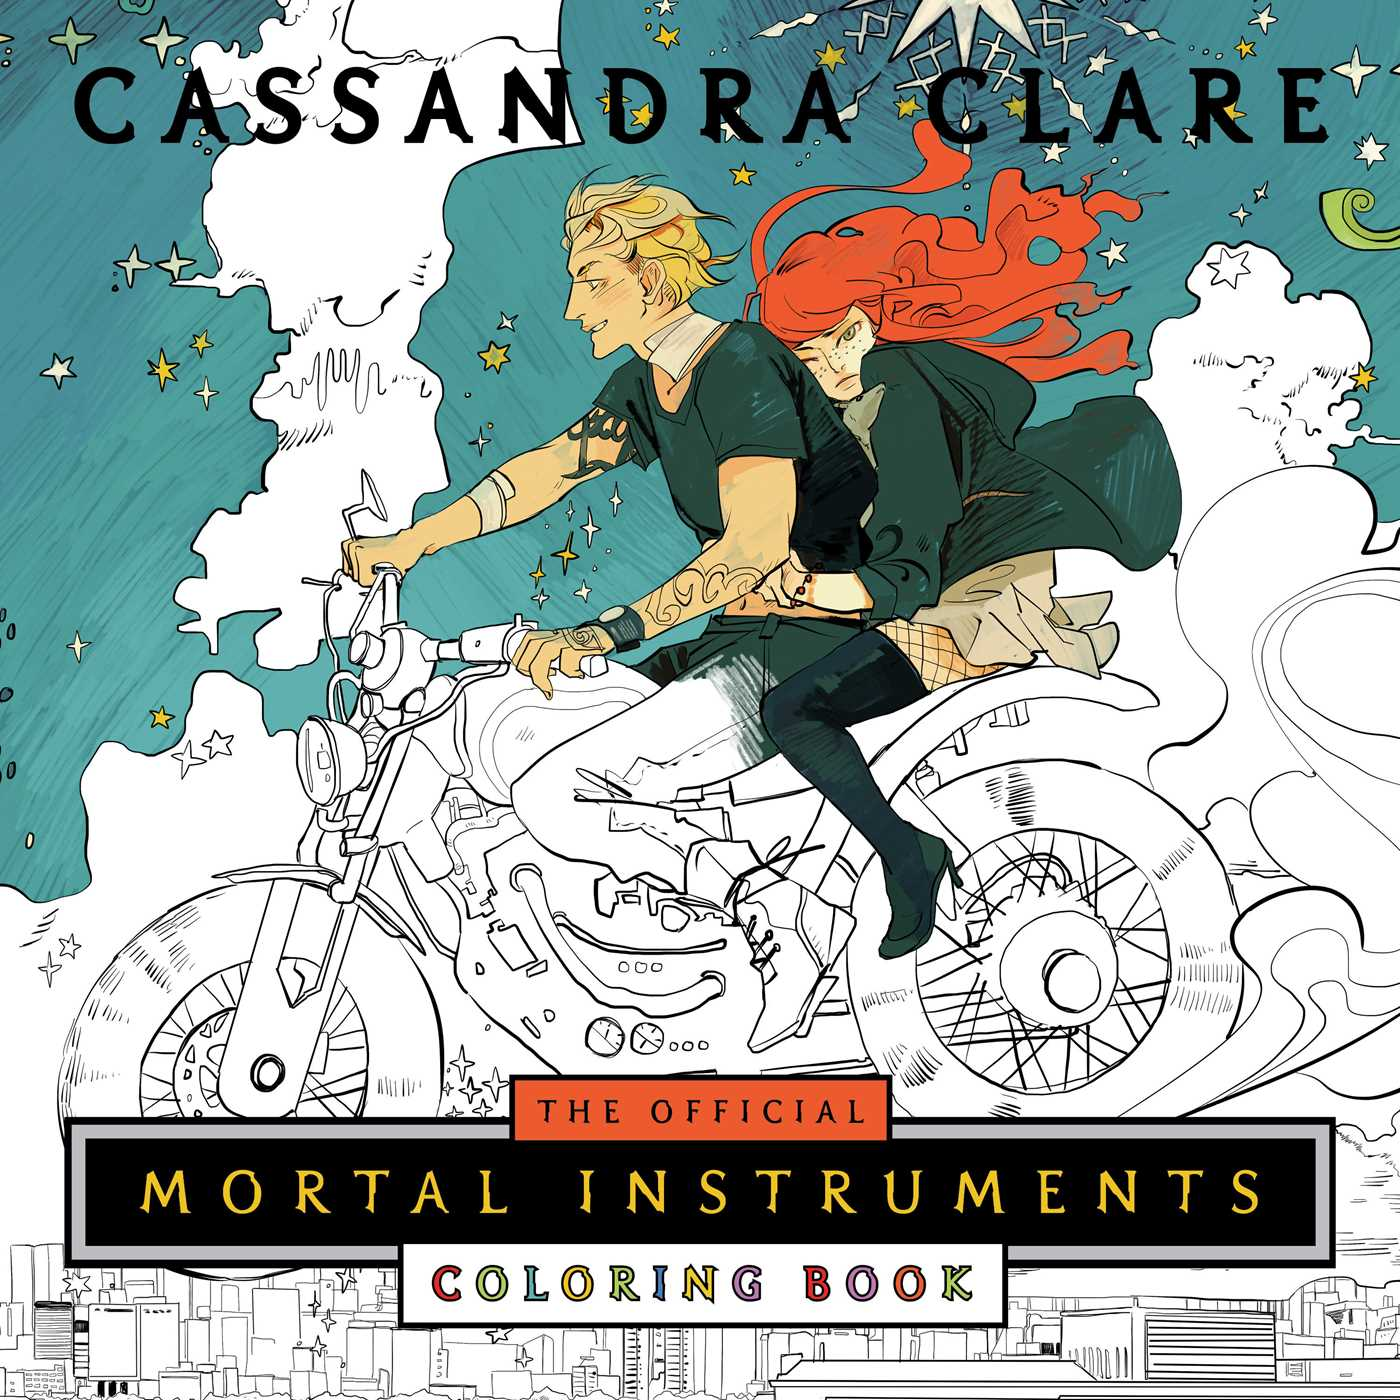 The Official Mortal Instruments Coloring Book | The Shadowhunters ...